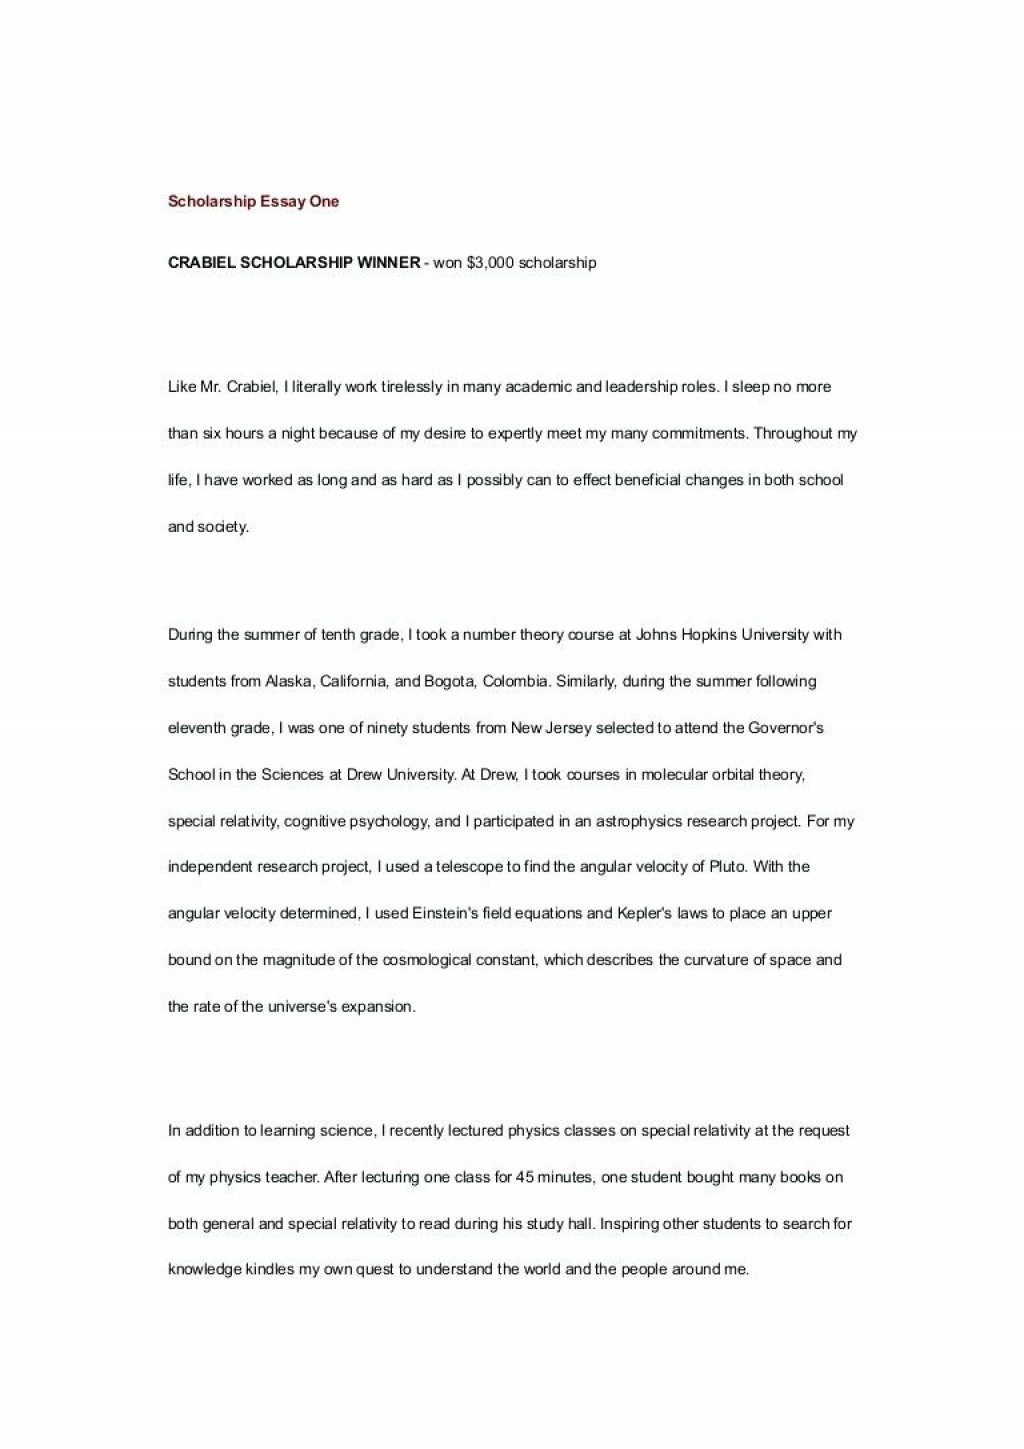 010 Essay Example No Scholarship College Application Template Legit Resume Cover Letter Thumbnail For Sample Wondrous Scholarships High School Freshman Seniors 2019 Large